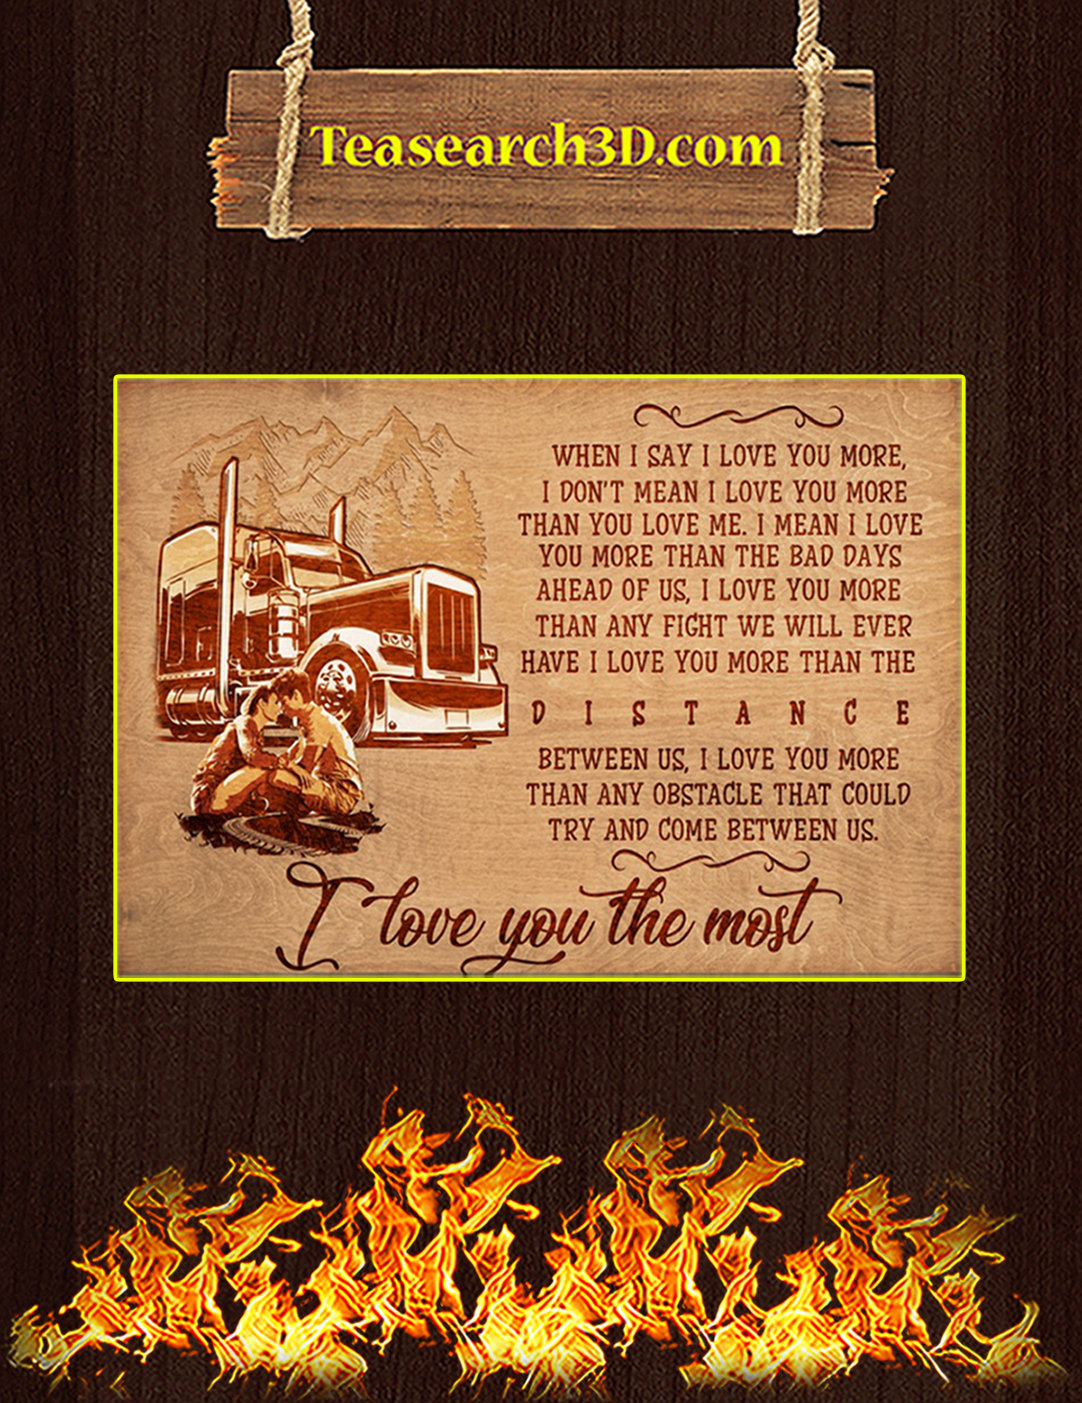 Trucker I love you the most poster A2